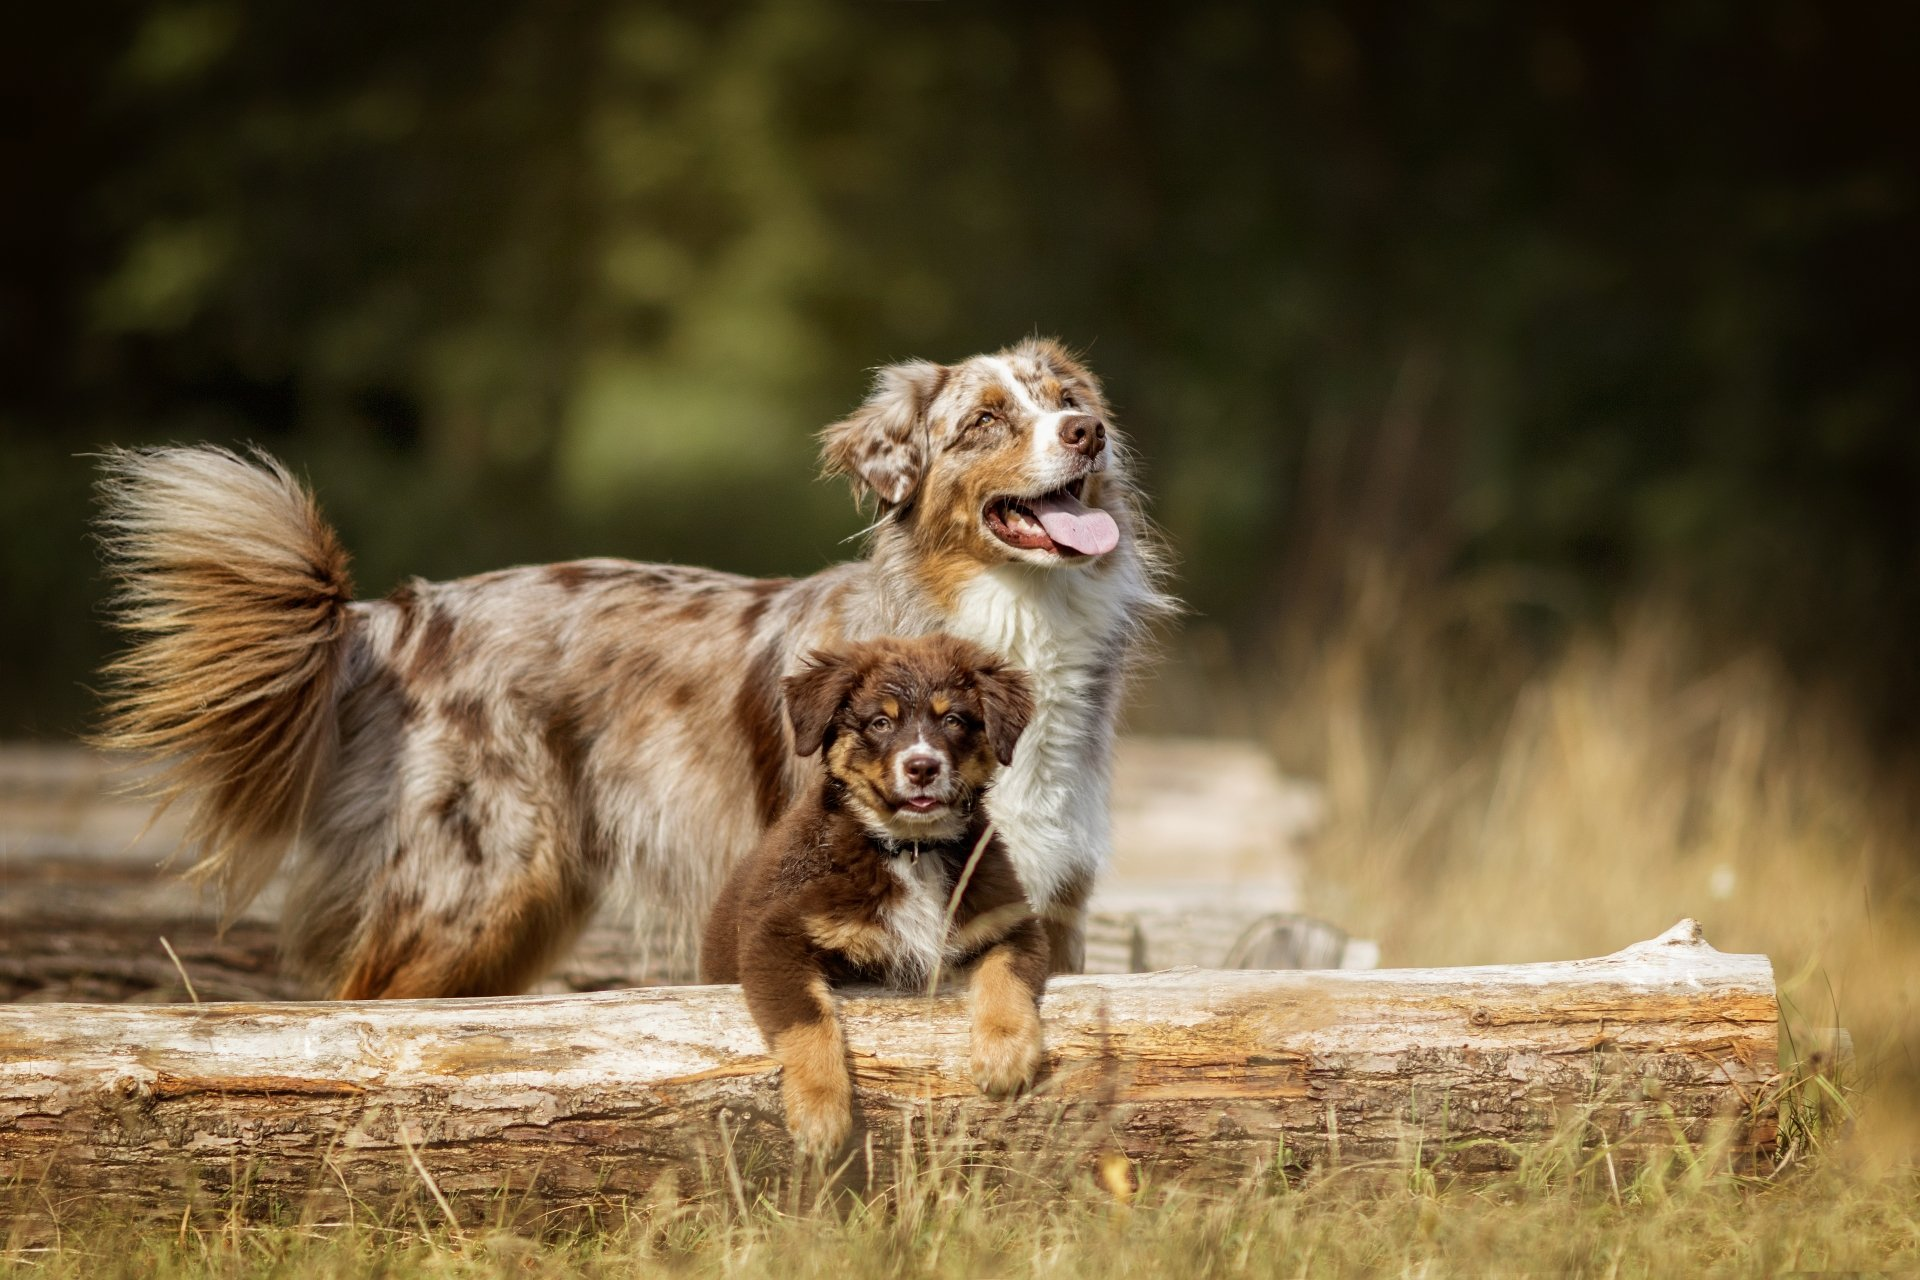 Animal - Australian Shepherd  Dog Pet Puppy Baby Animal Depth Of Field Wallpaper